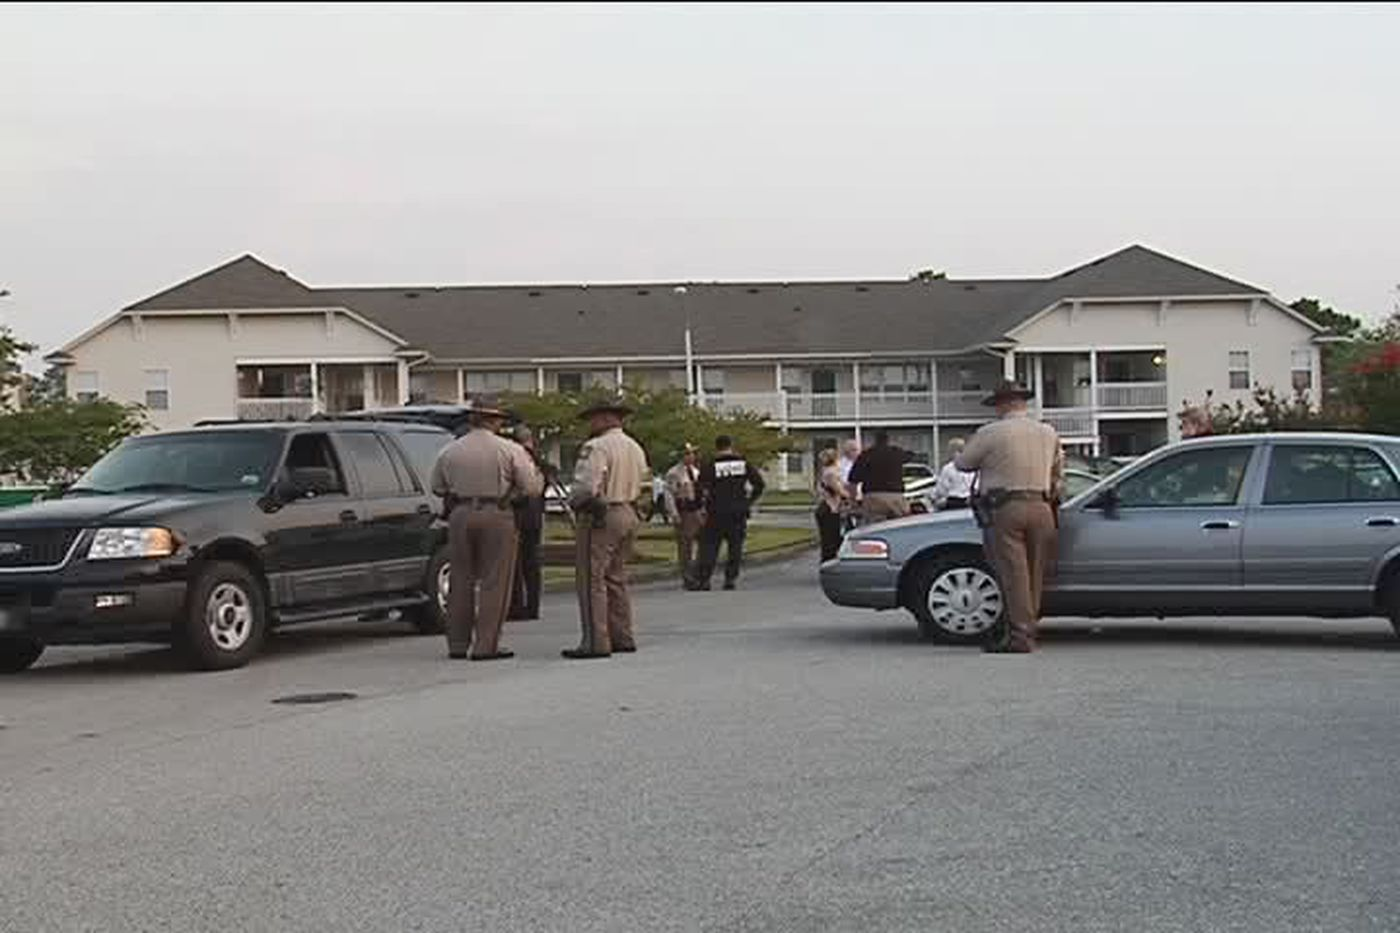 A New Hanover County Sheriff's office detention officer shot